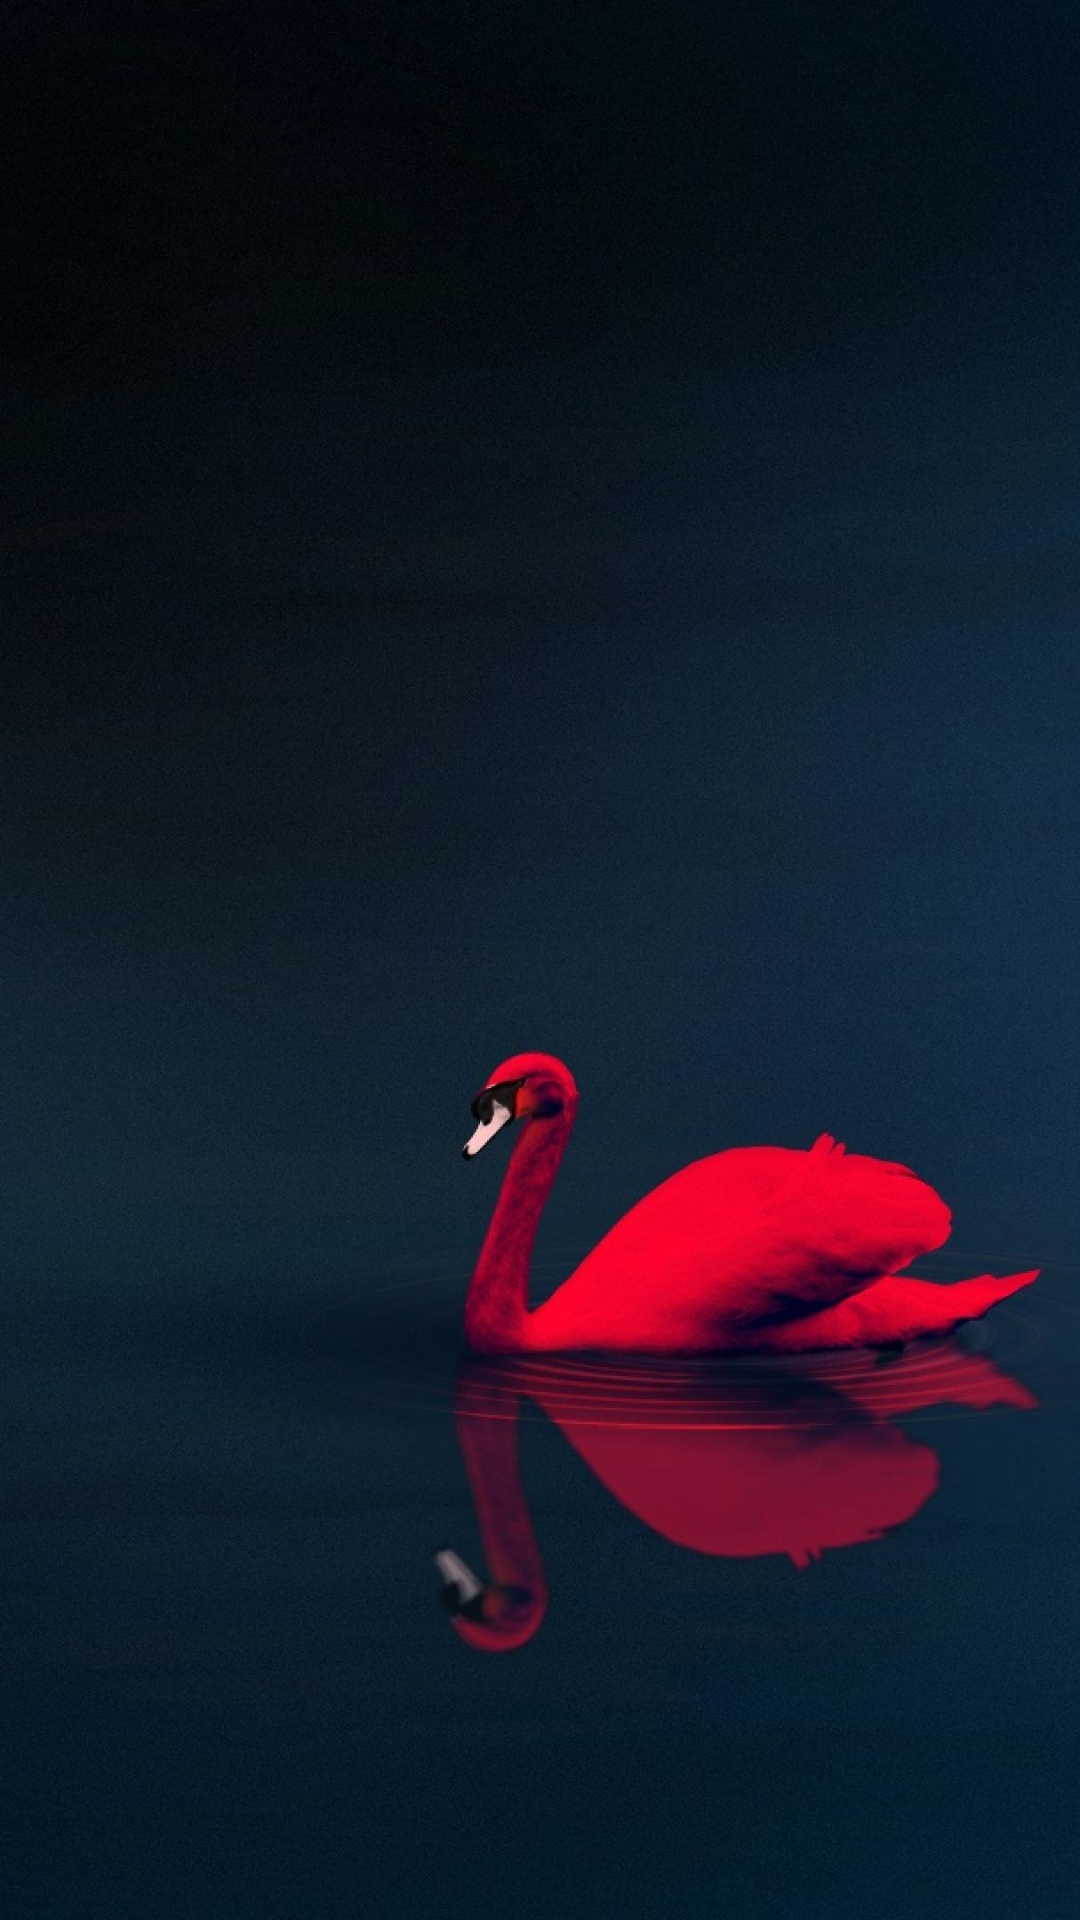 cygne-rouge-android-fonds-ecran